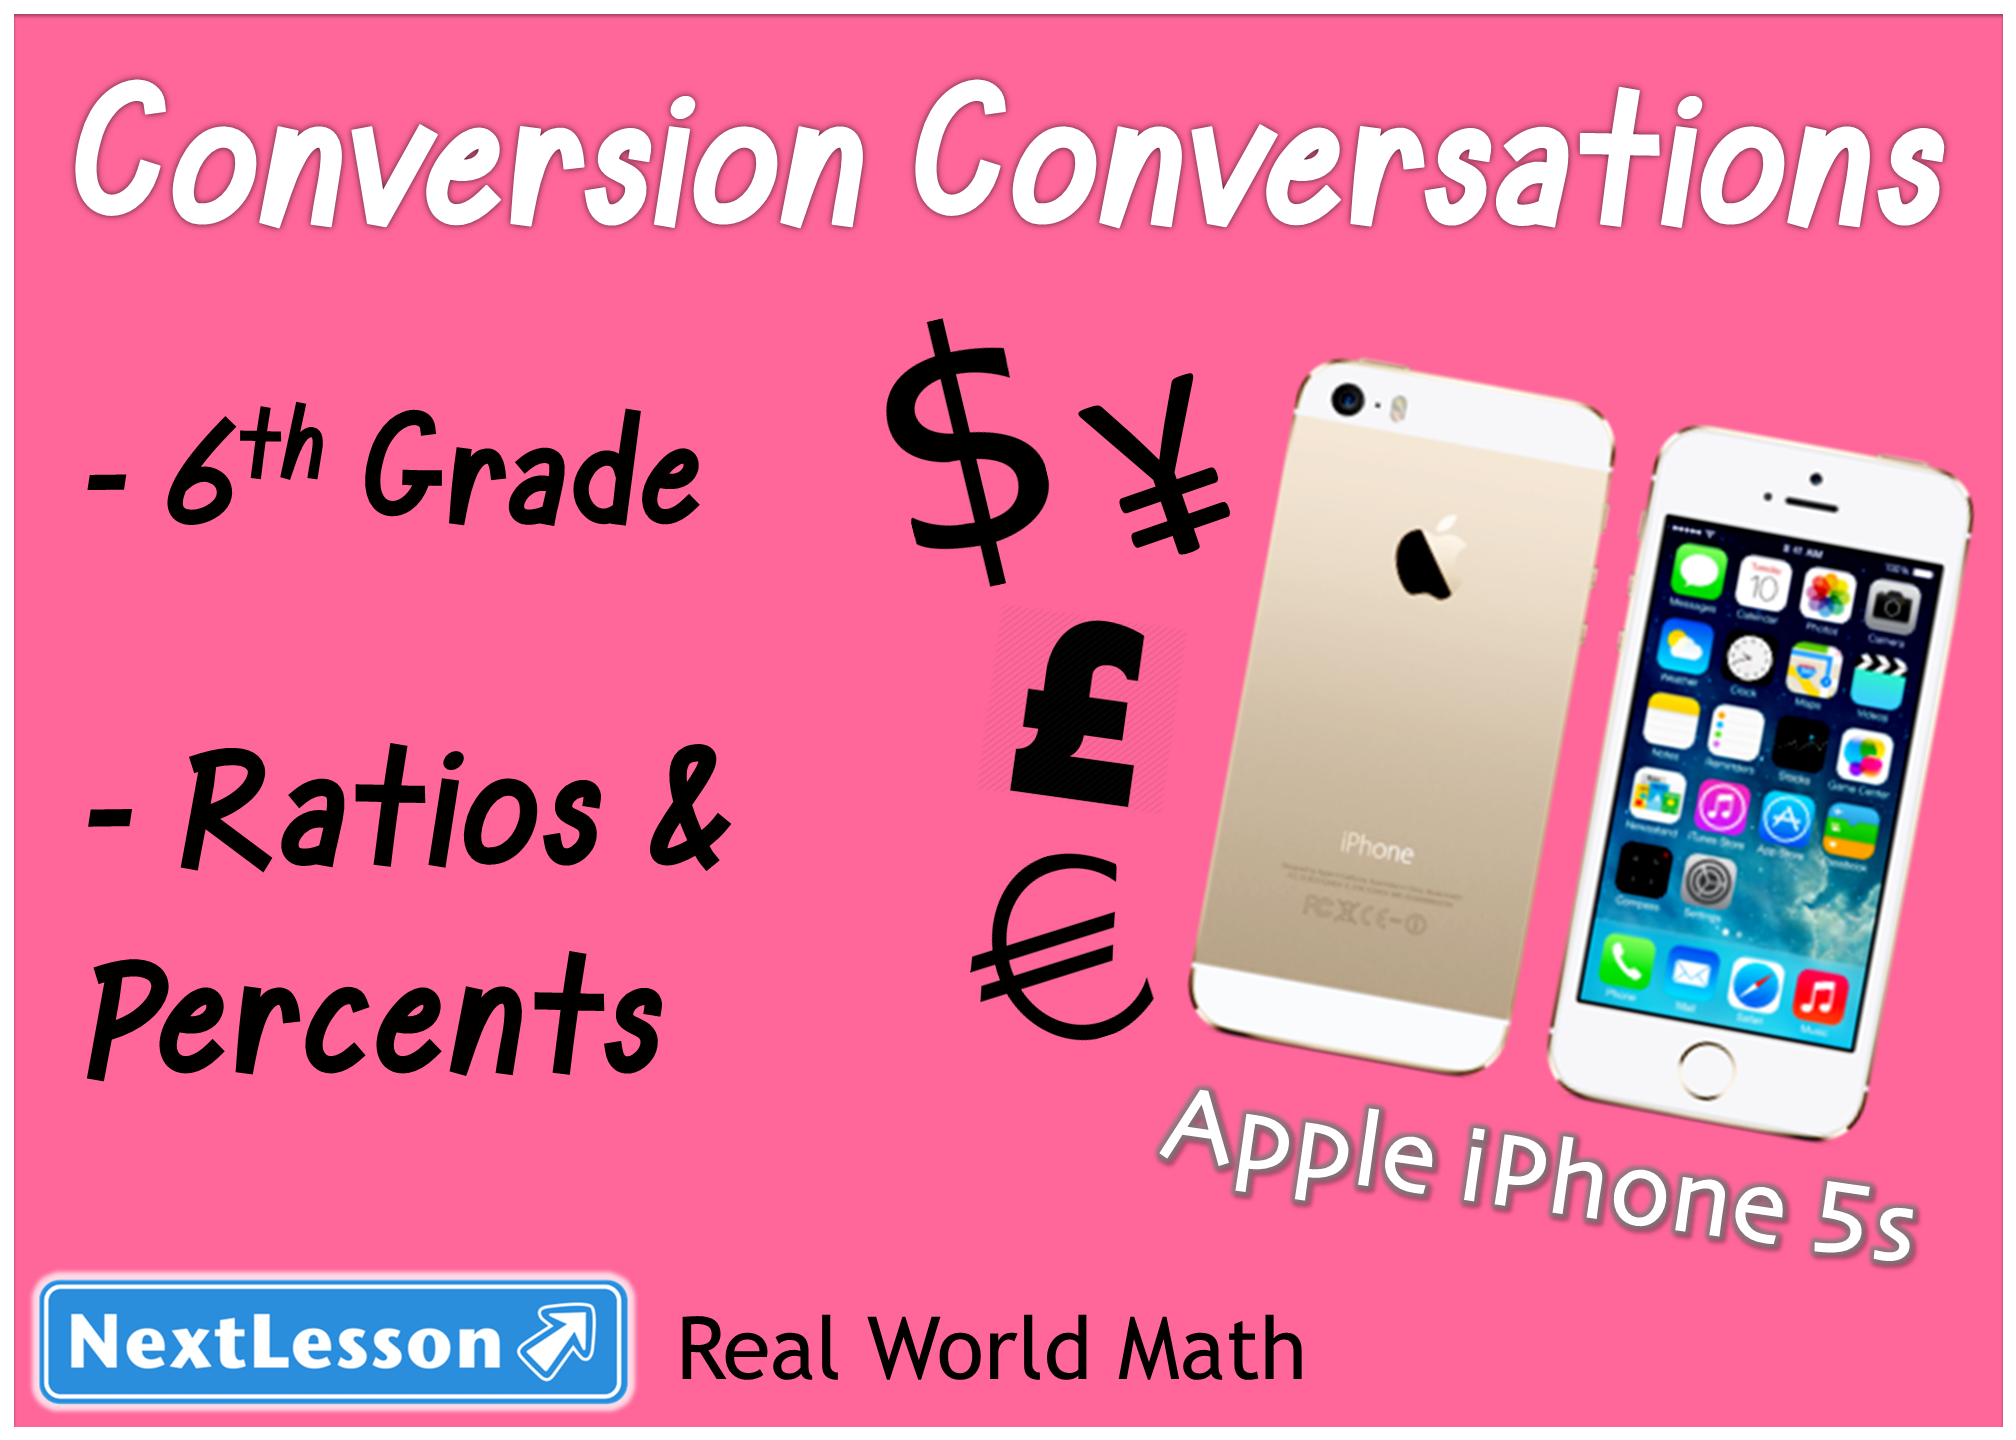 Conversion Conversations